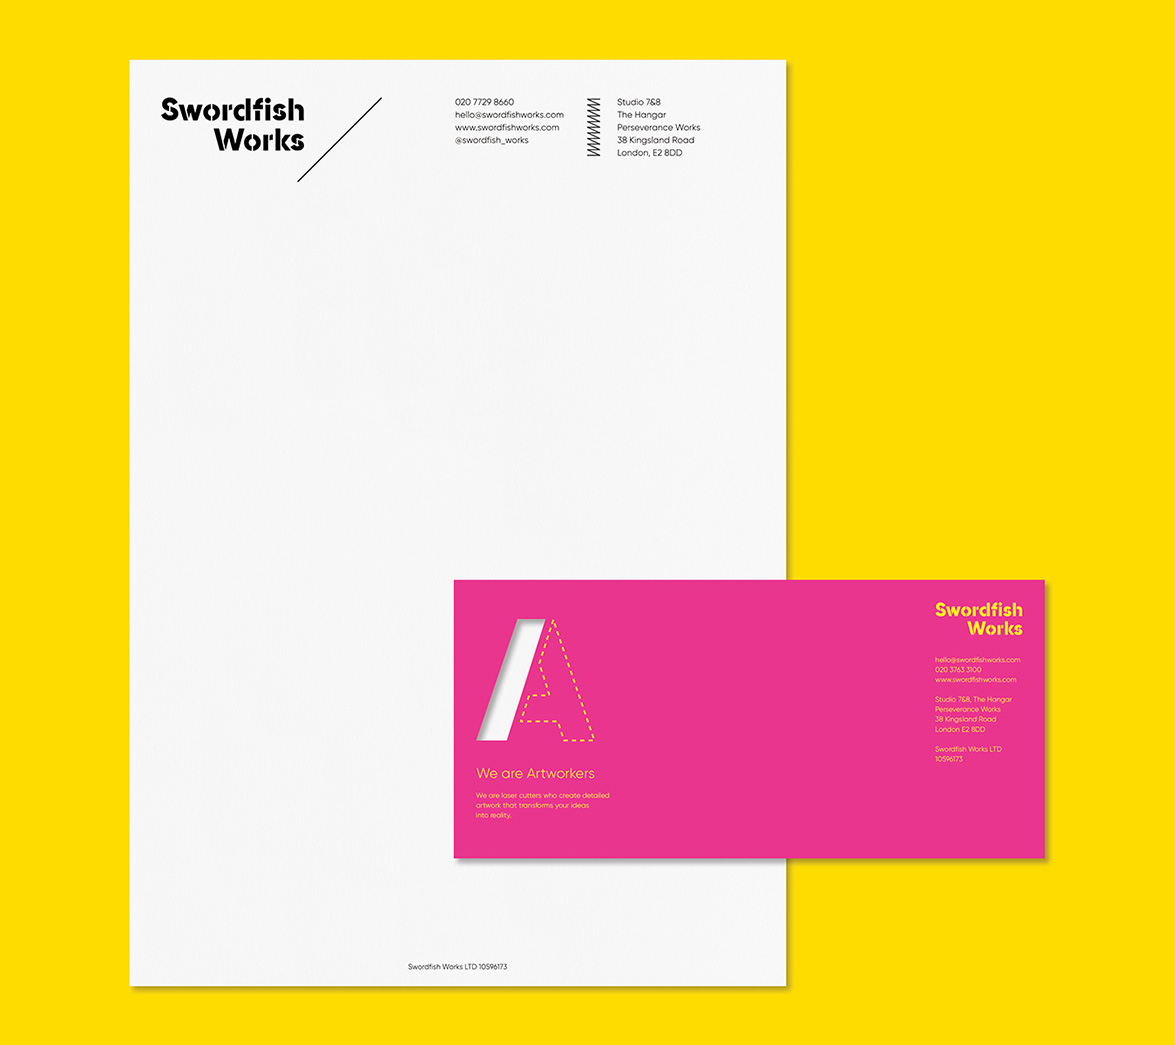 Stationery for laser cutting startup brand Swordfish, designed by White Bear Studio